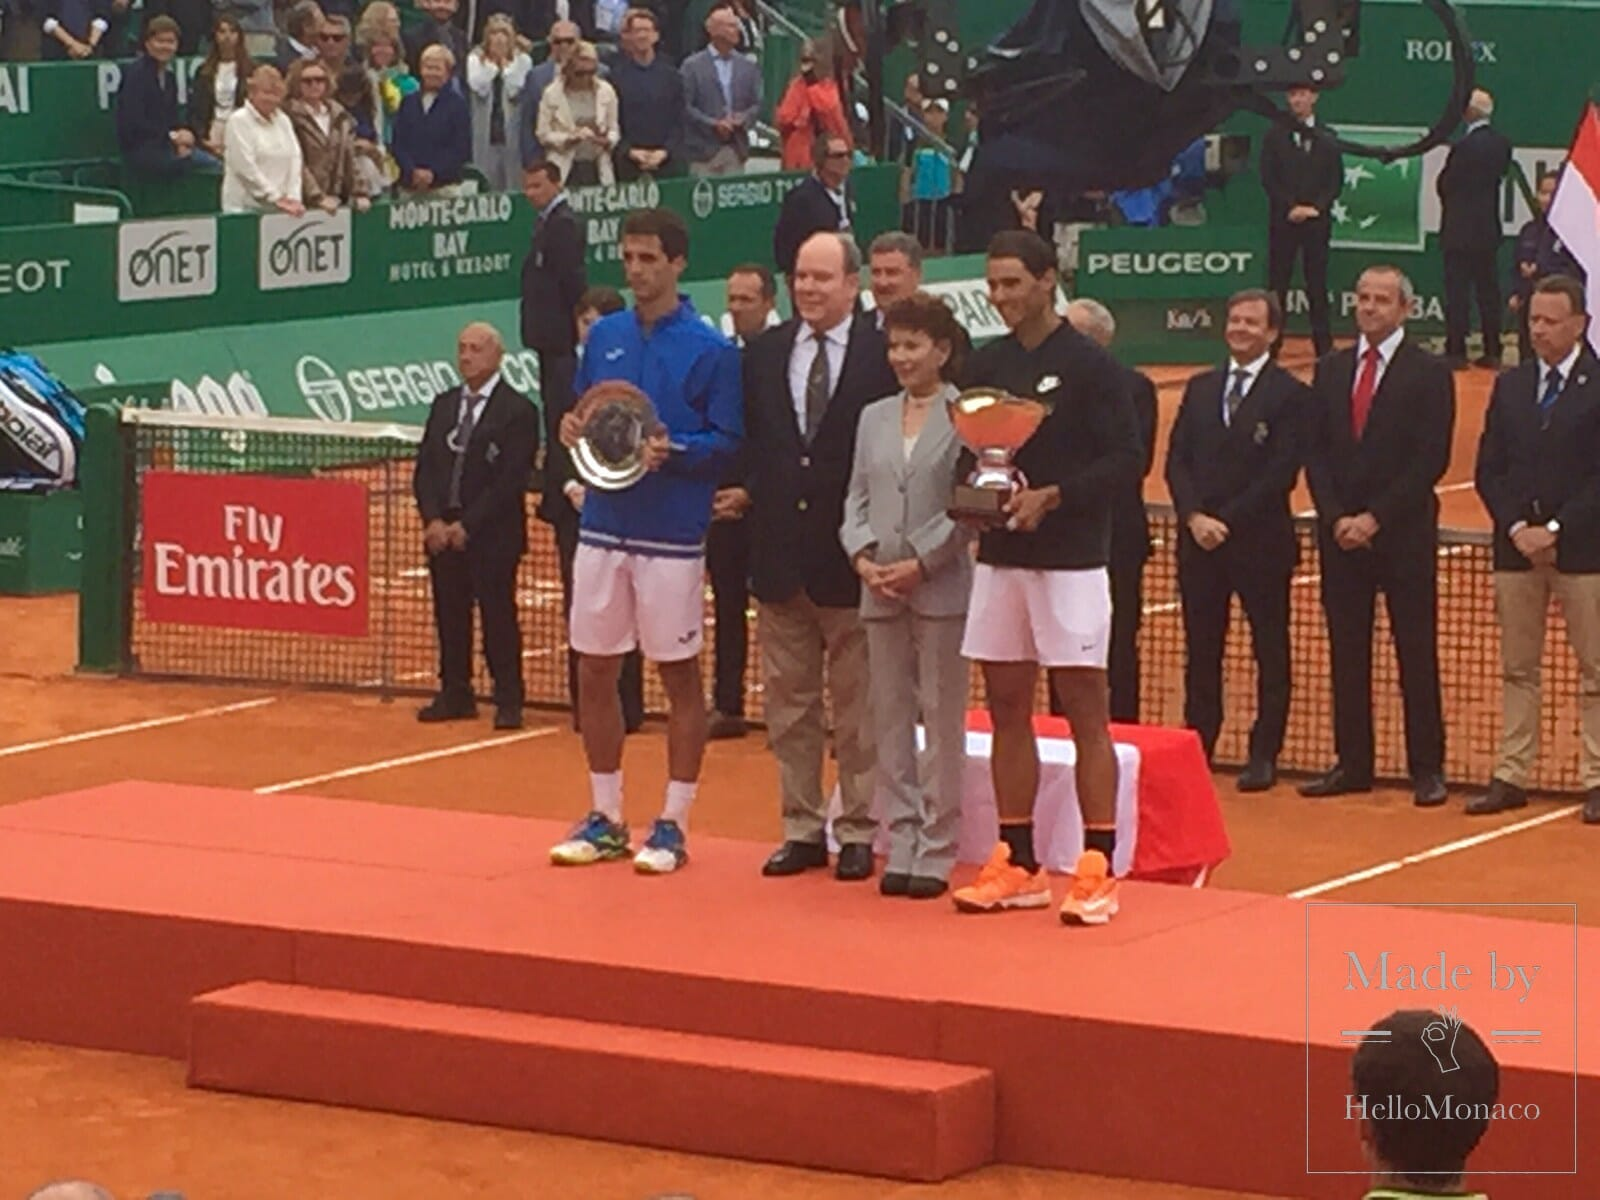 His Serene Highness Albert II, Sovereign Prince of Monaco at the Monte-Carlo Rolex Masters 2017